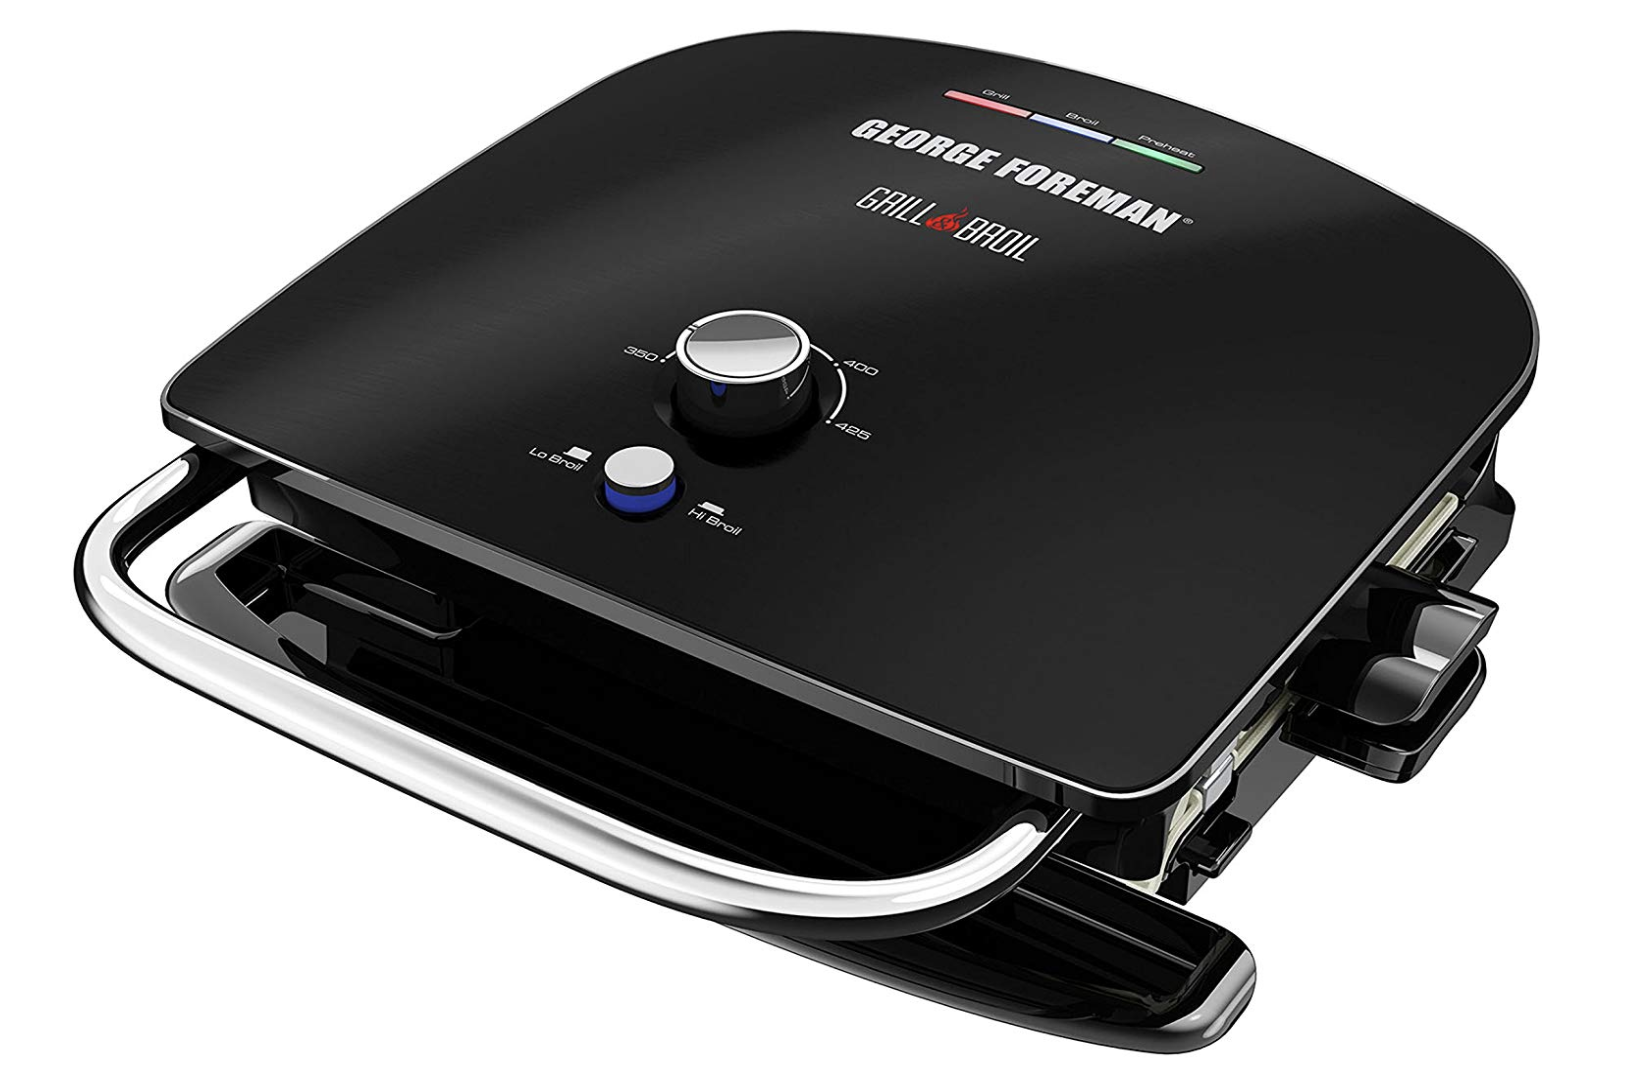 George Forman Grill & Broil 7-in-1 Electric Indoor Grill